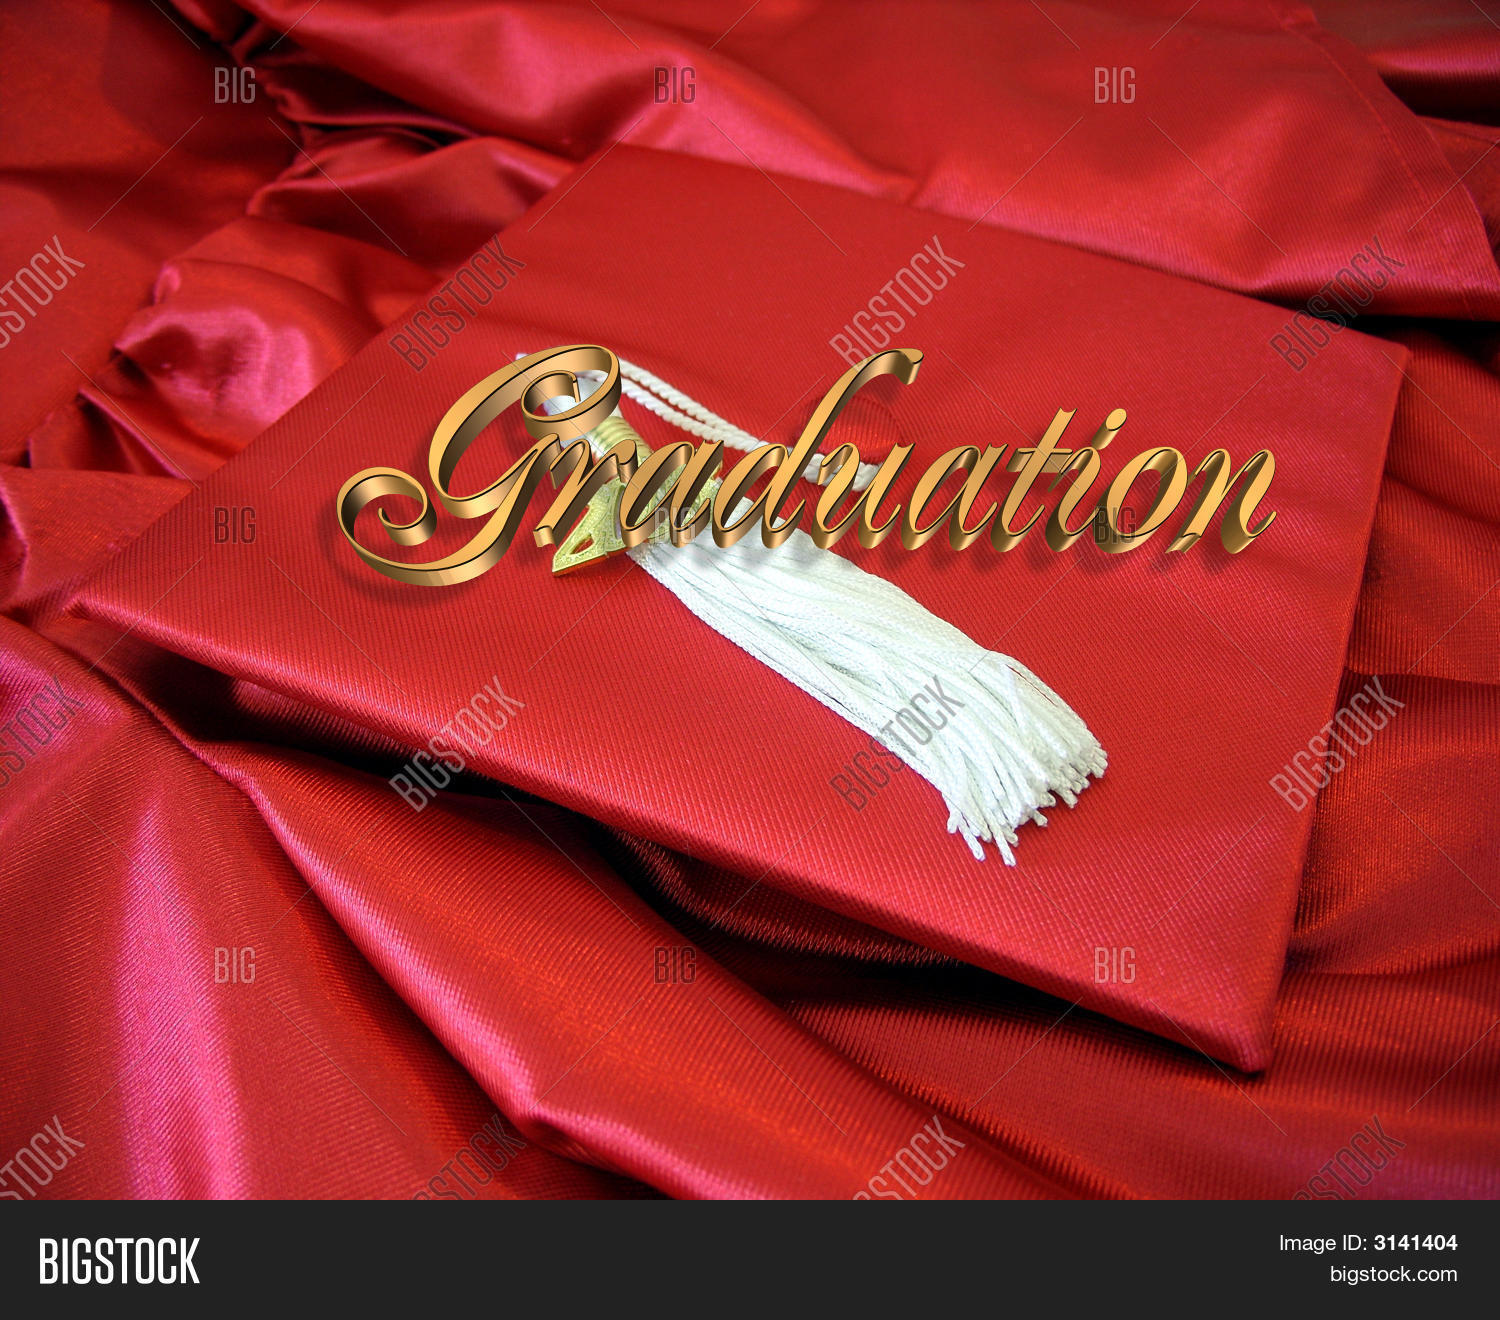 Graduation Card Red Cap And Gown Stock Photo & Stock Images | Bigstock